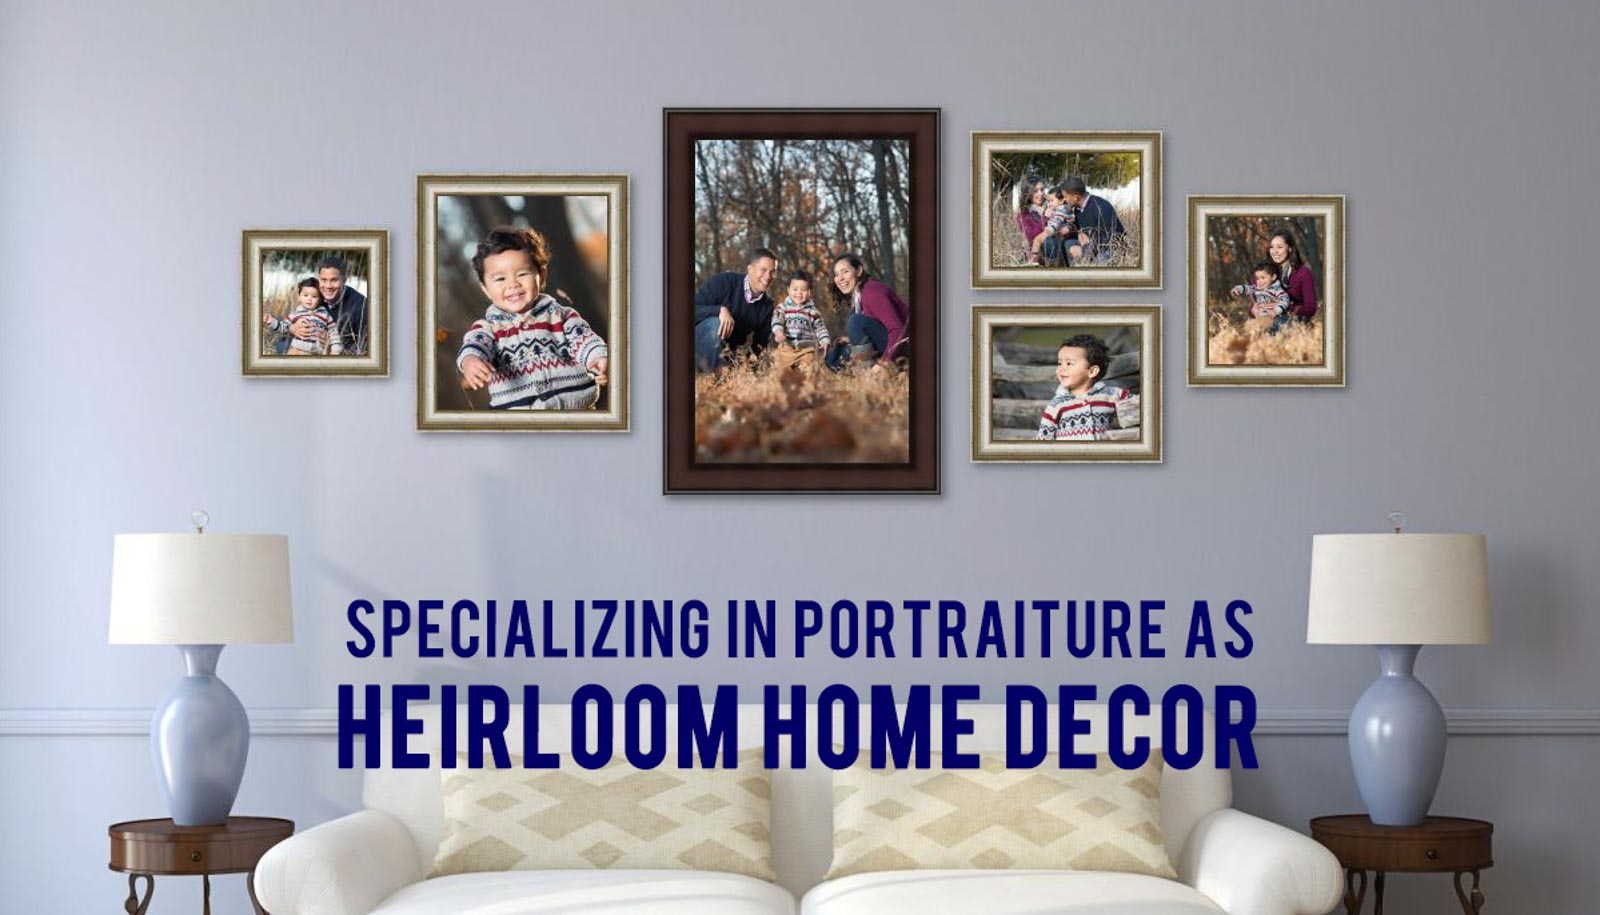 Specializing in Portraiture as Heirloom Home Decor